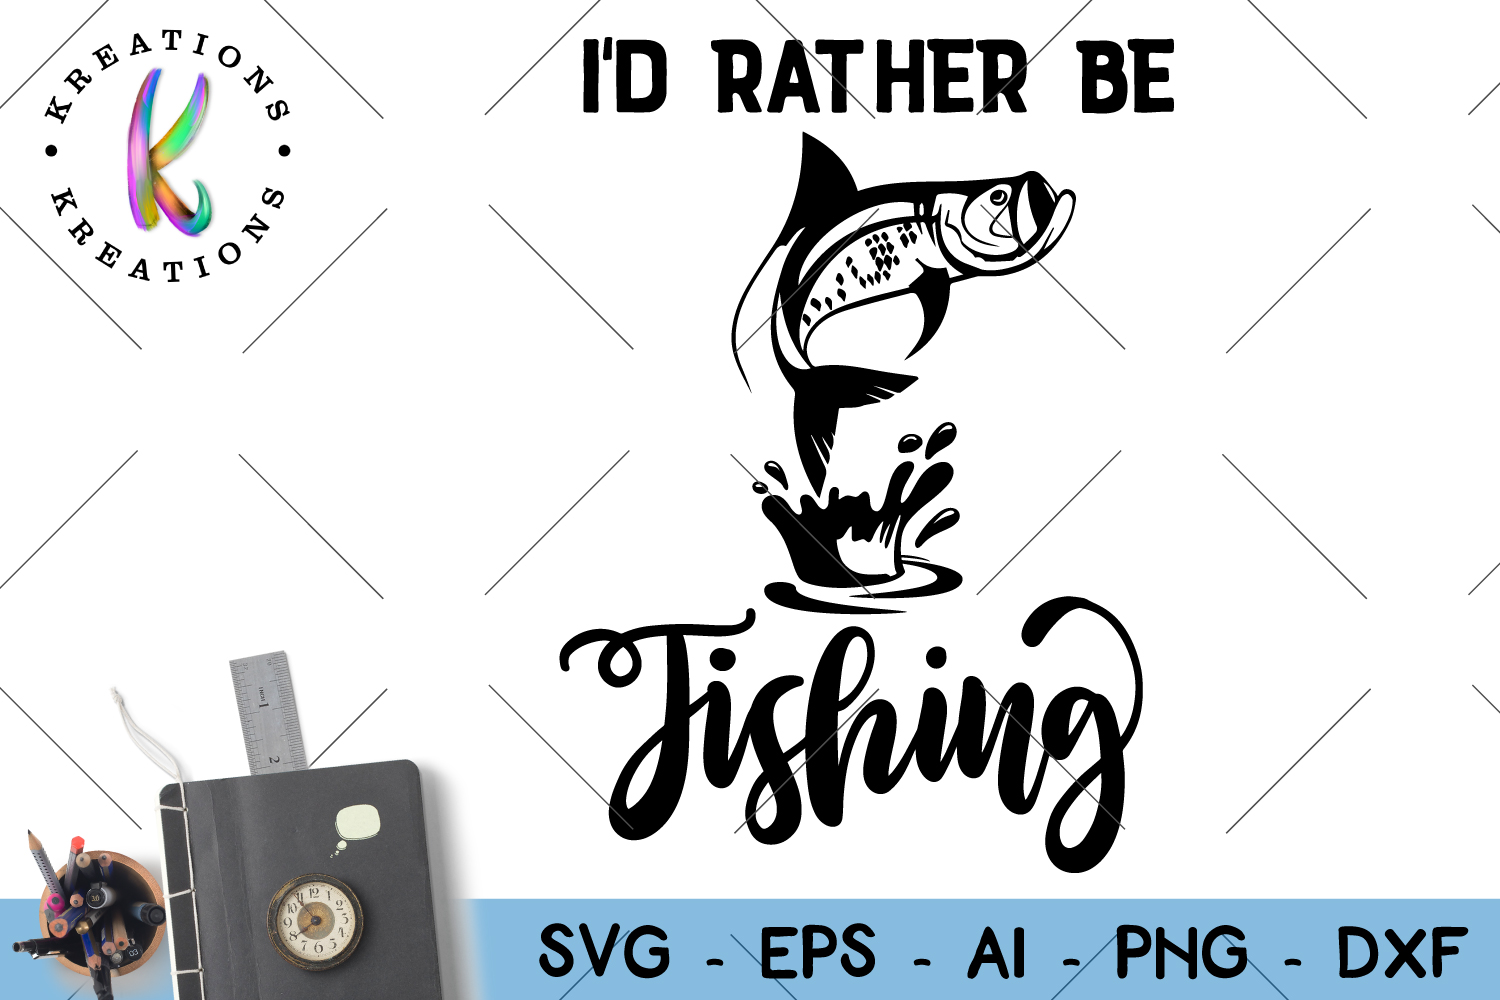 Fishing Svg I'd rather be fishing cut file  example image 1